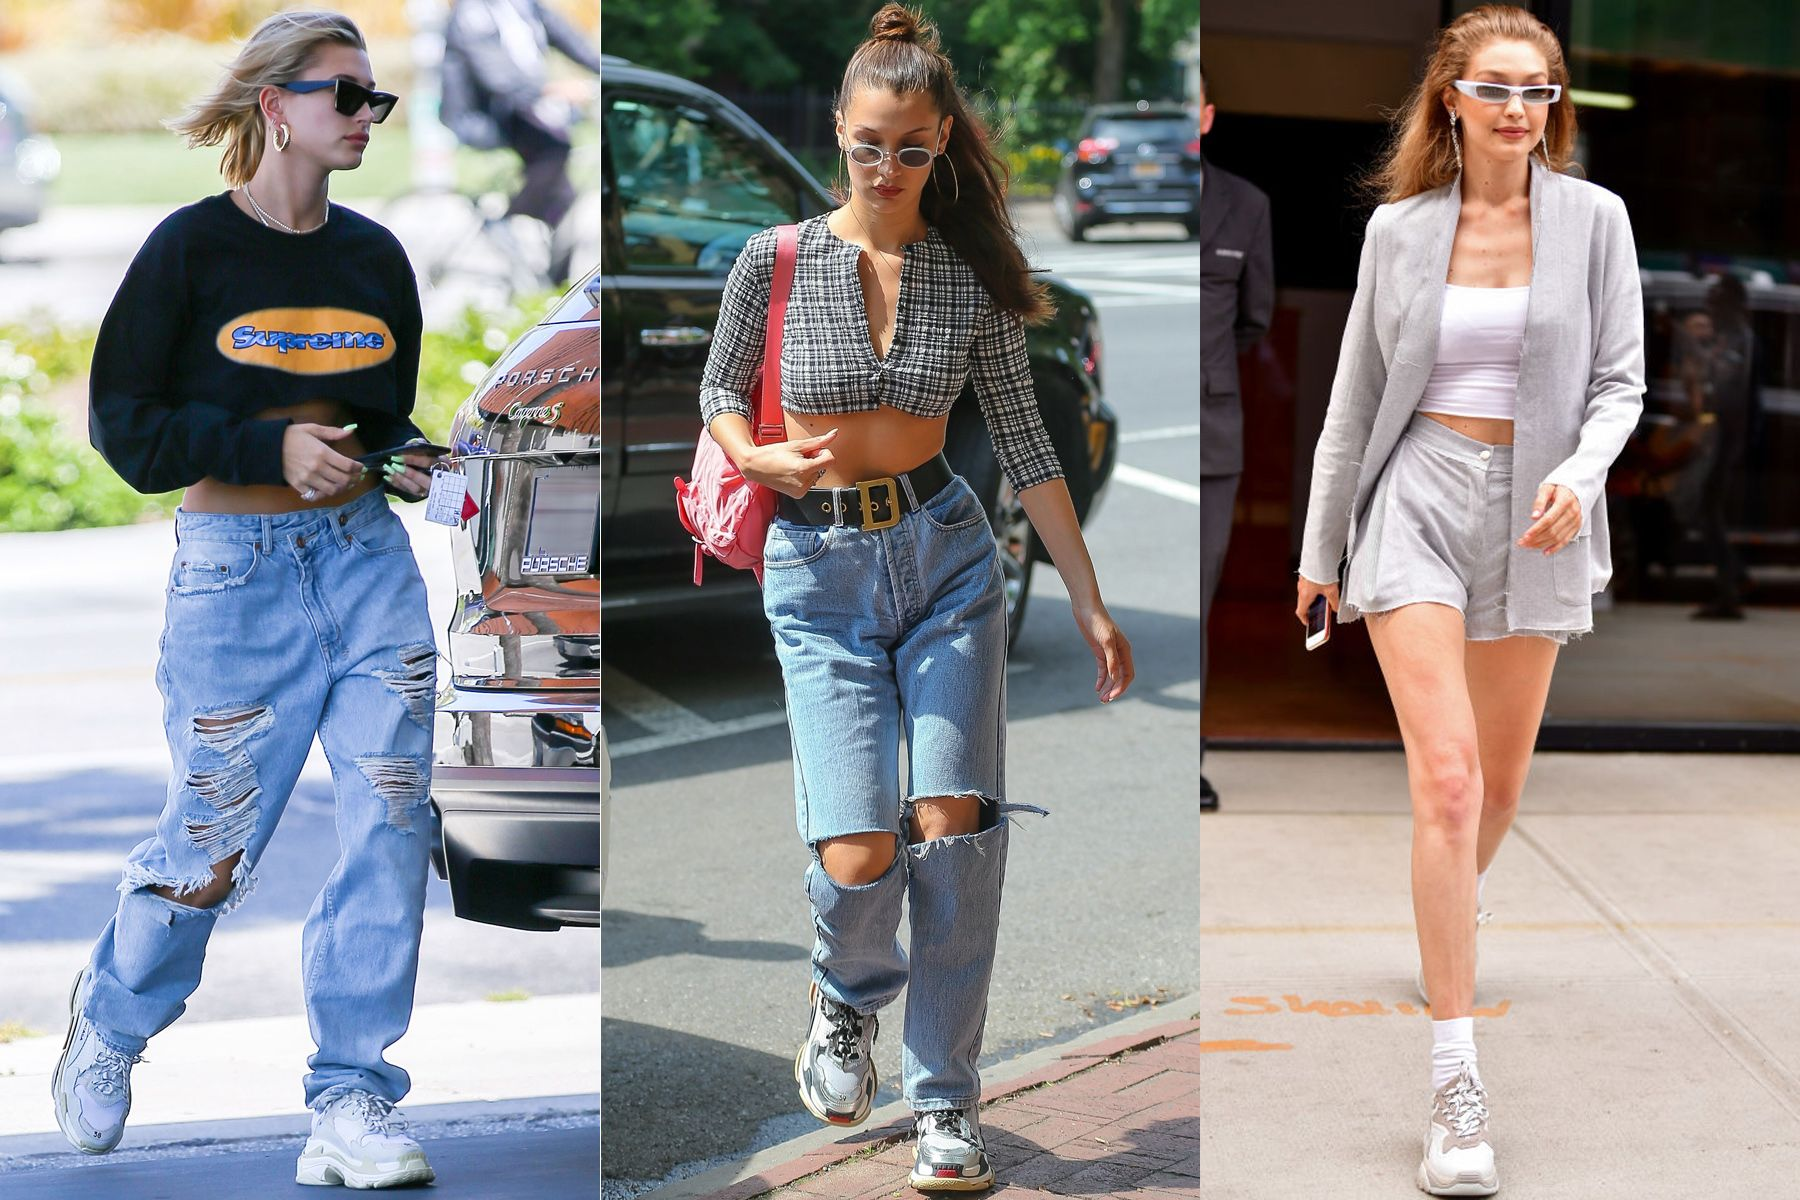 EXCLUSIVE: Hailey Baldwin shows her abs while stoping to pump some gas in her Porsch in Beverly Hills